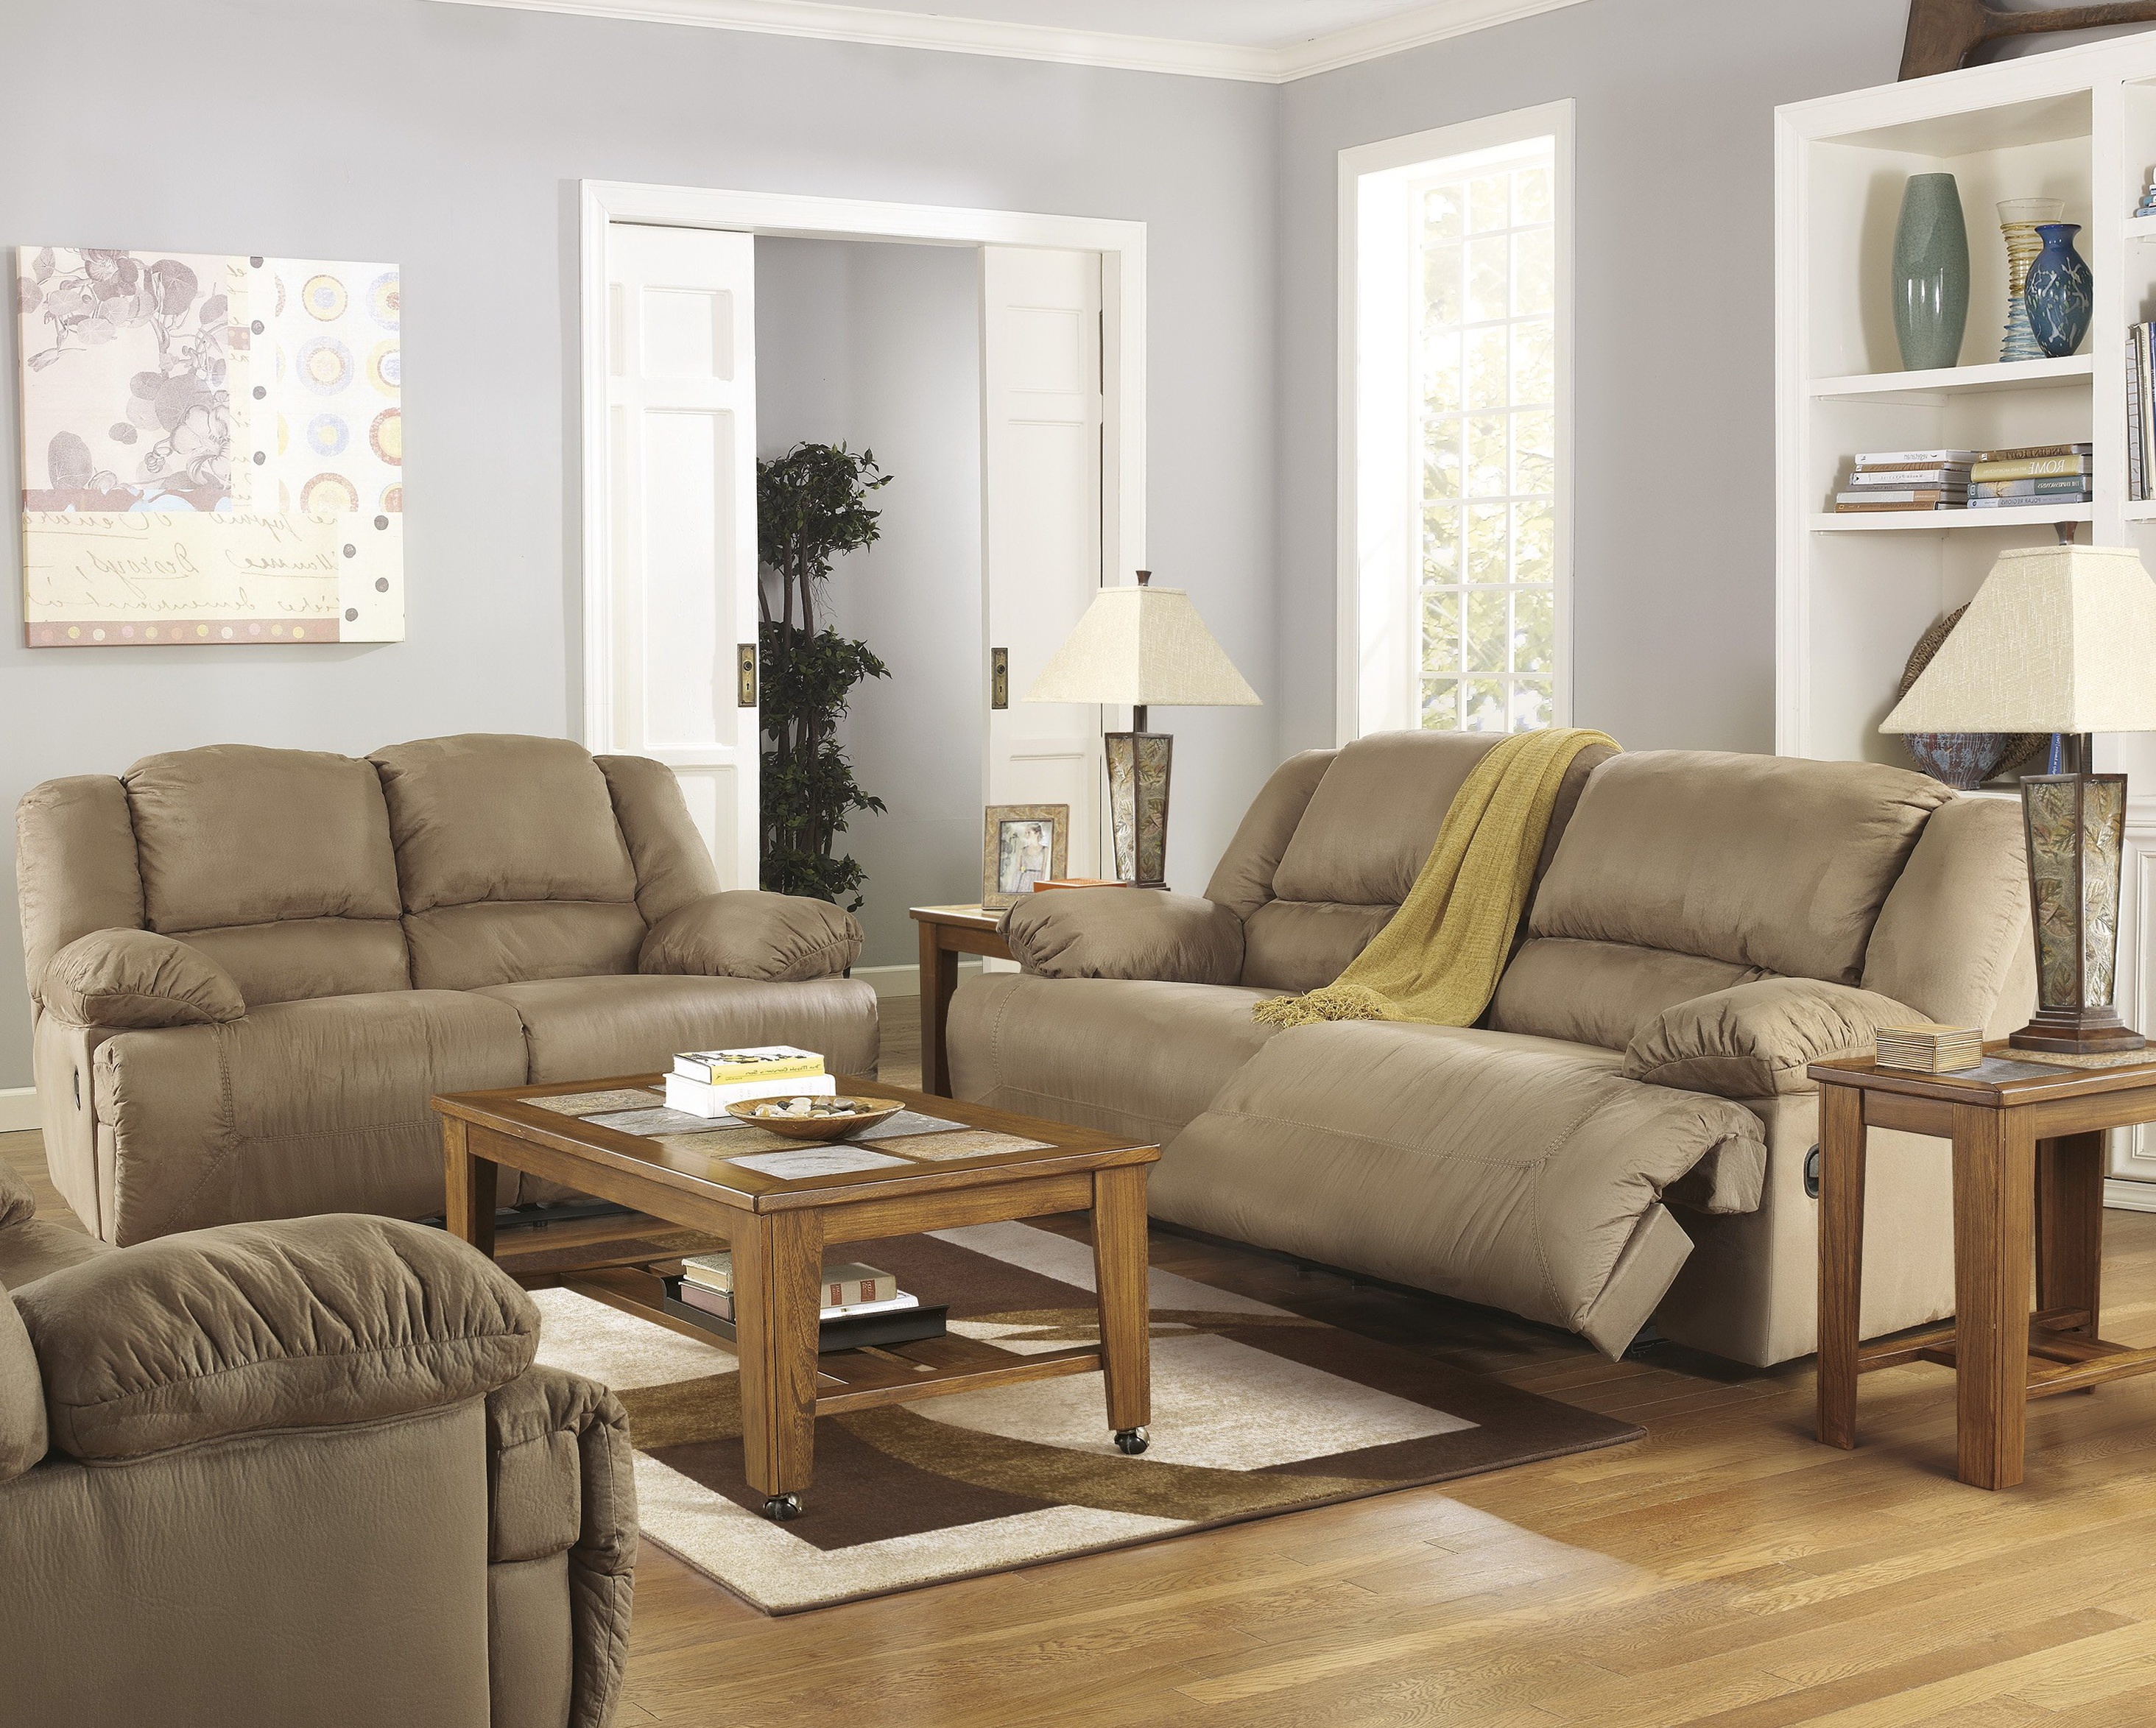 Cheap Living Room Furniture Under 100